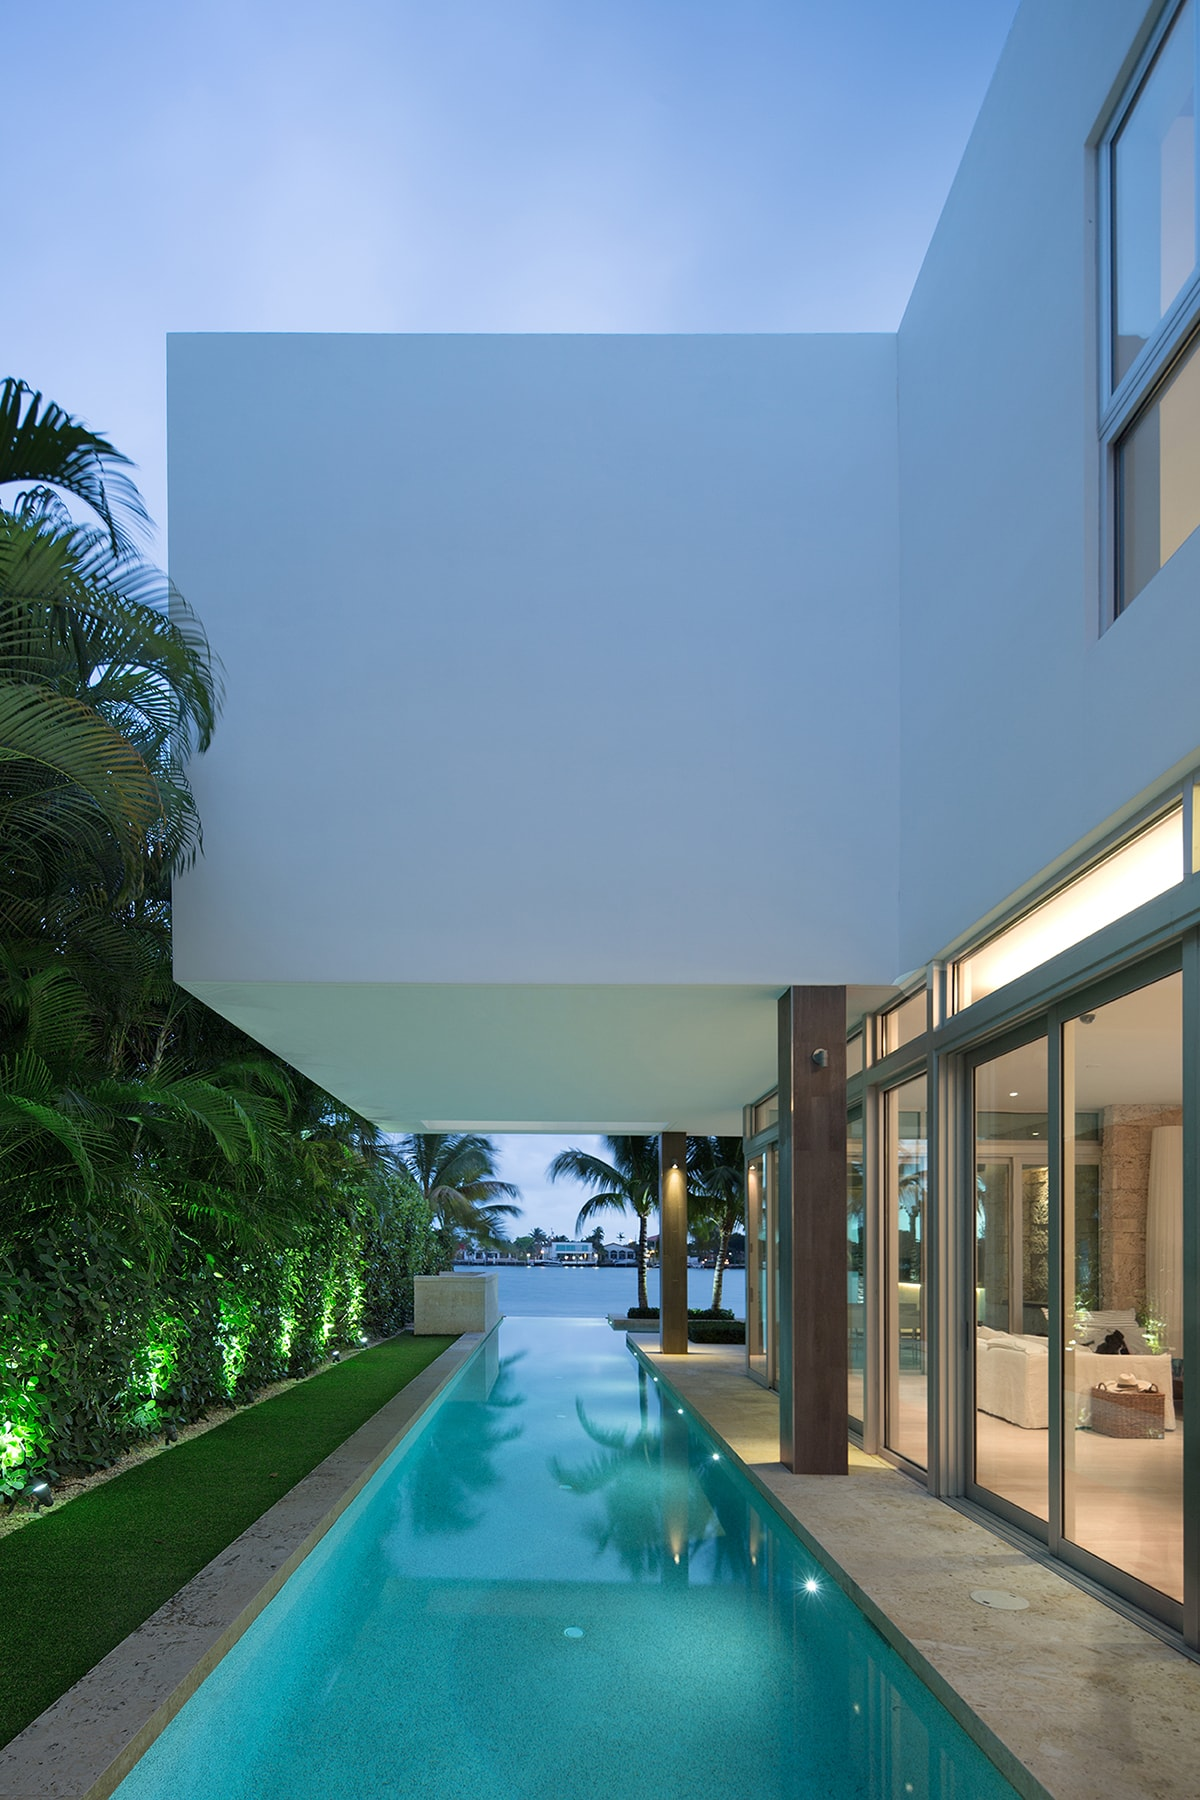 Amazing Houses: Living Modern With Style - Architecture Beast on Amazing Modern Houses  id=80127